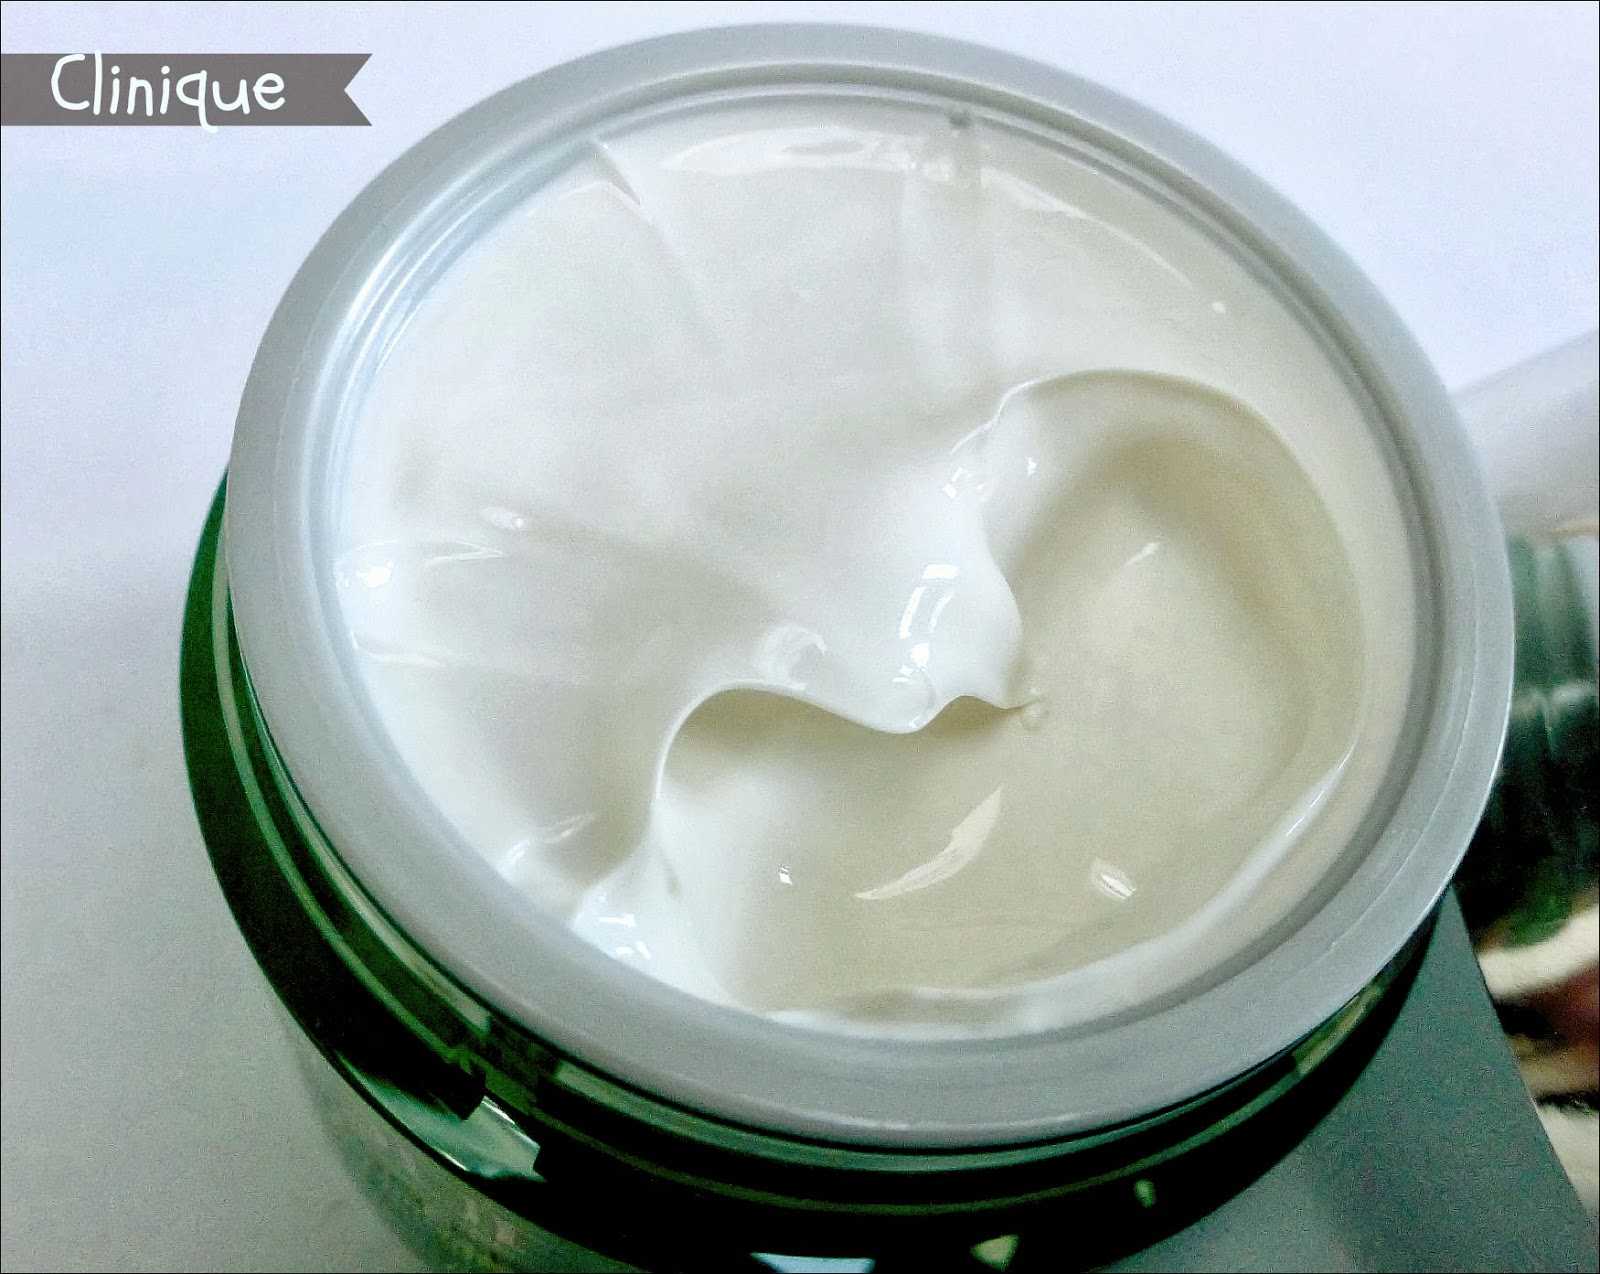 Clinique Superdefense Moisturiser